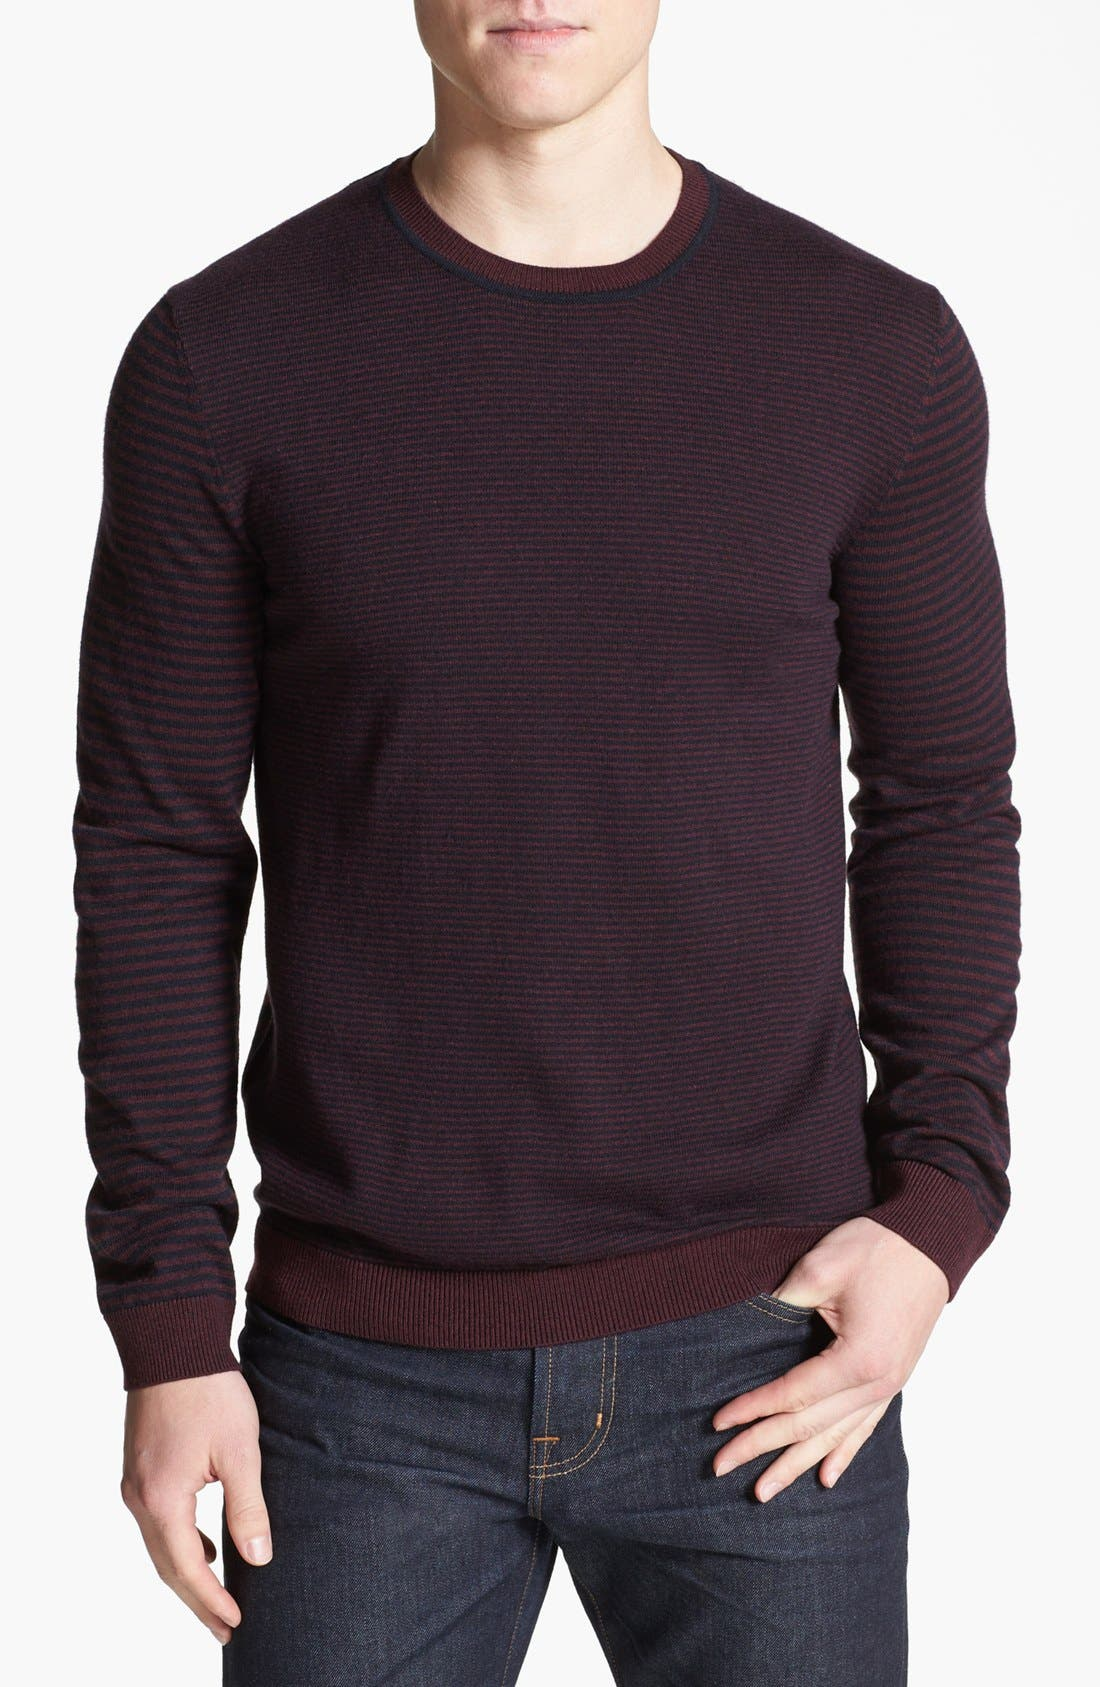 Main Image - Ted Baker London 'Moseley' Striped Crewneck Sweater